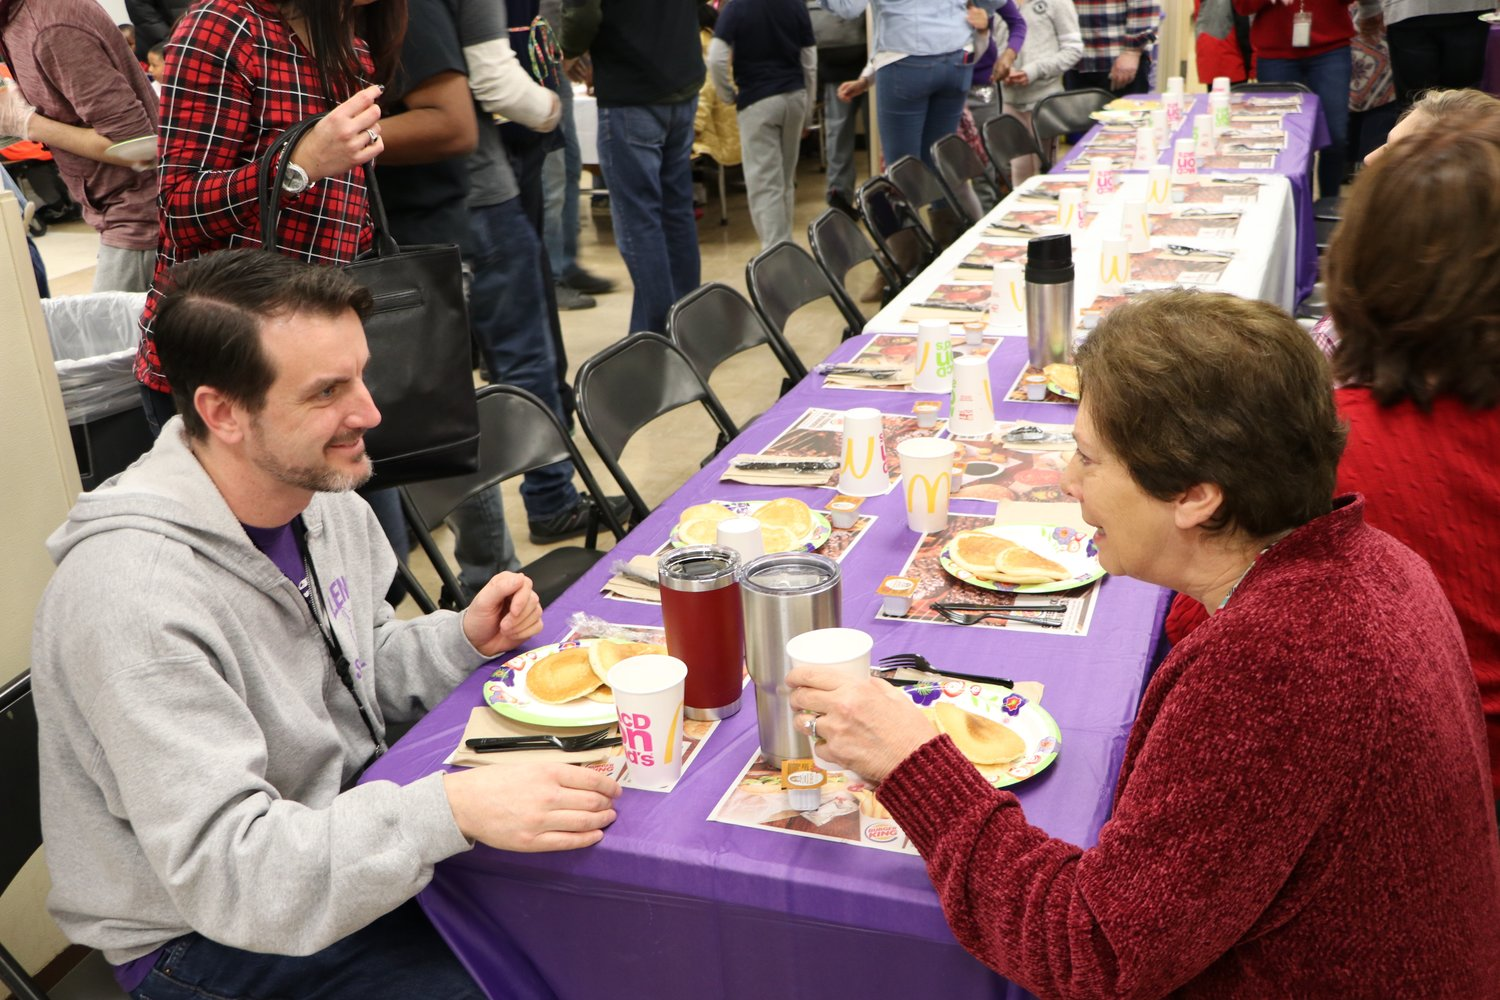 Teachers Tom Duffy and Shelly Stanley, above, enjoyed their breakfast.